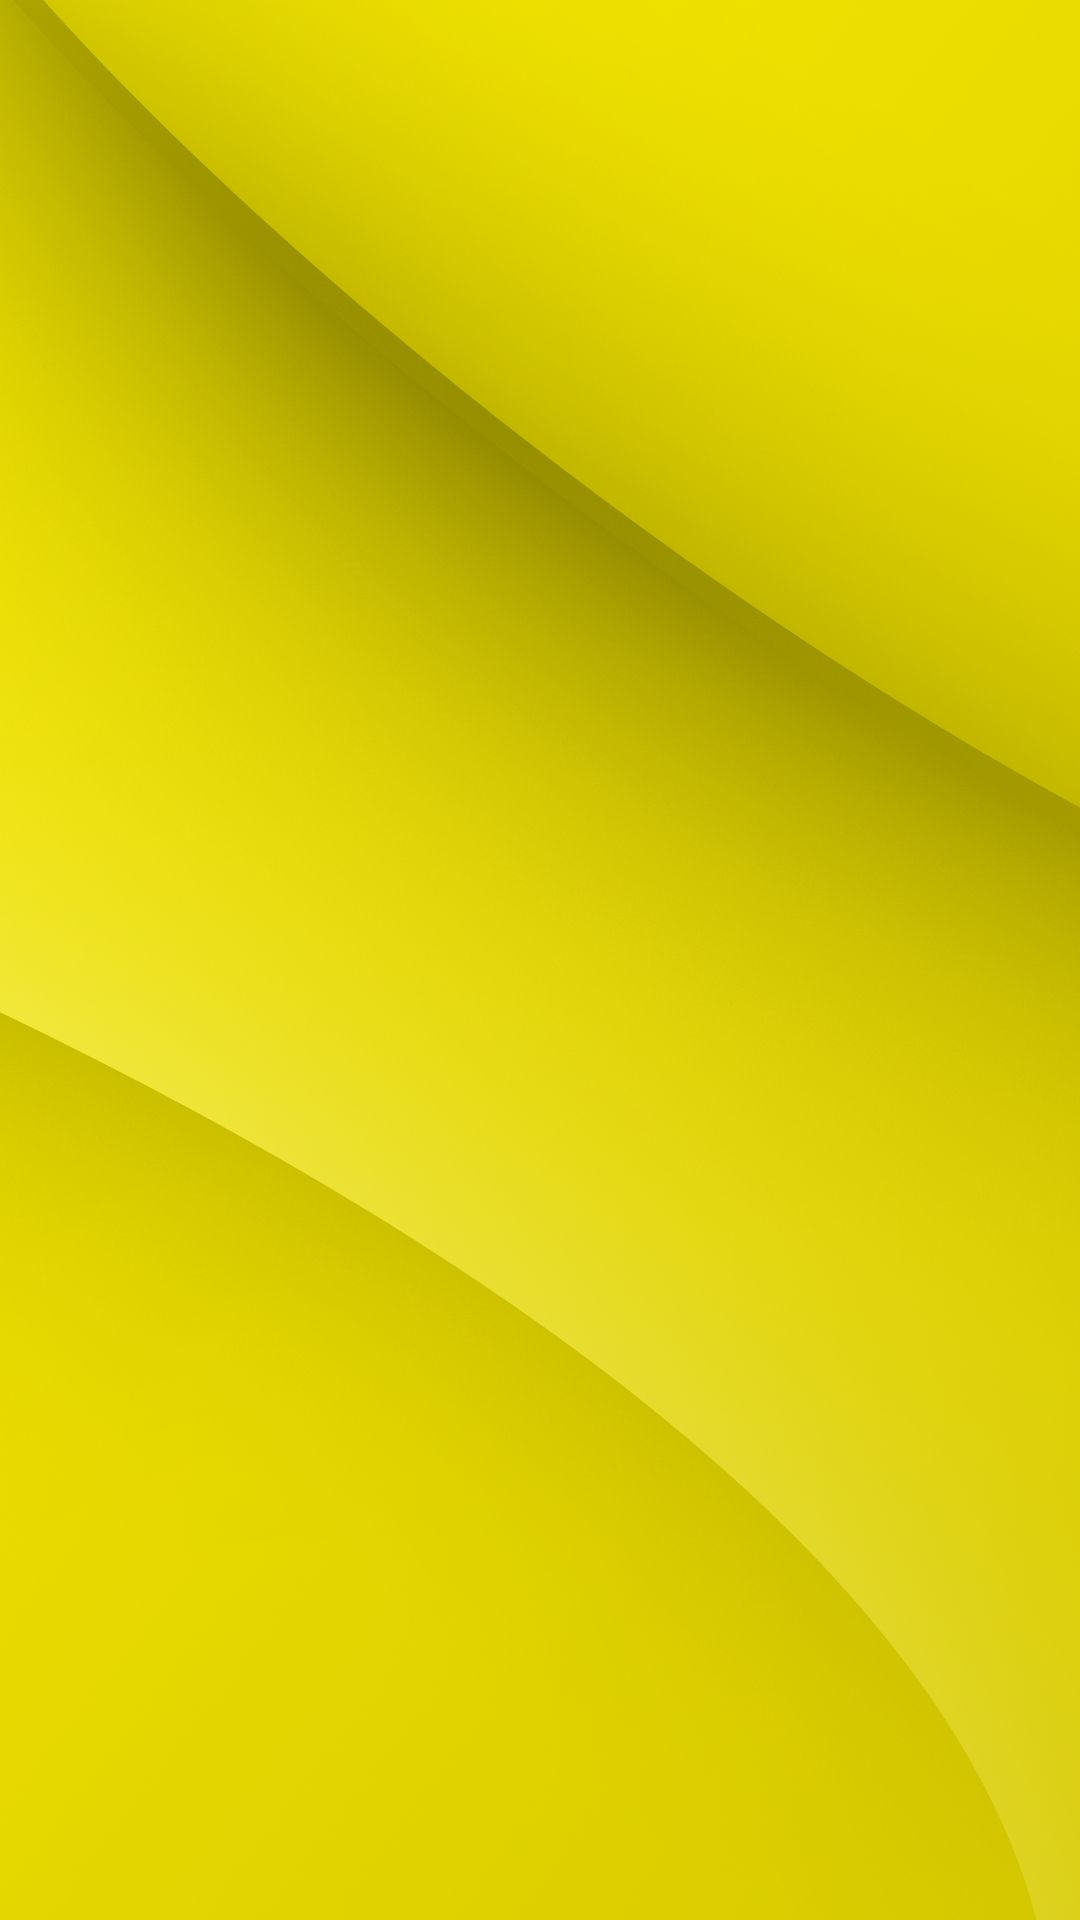 Abstract Yellow 1080x1920 Mobile Wallpaper Groc